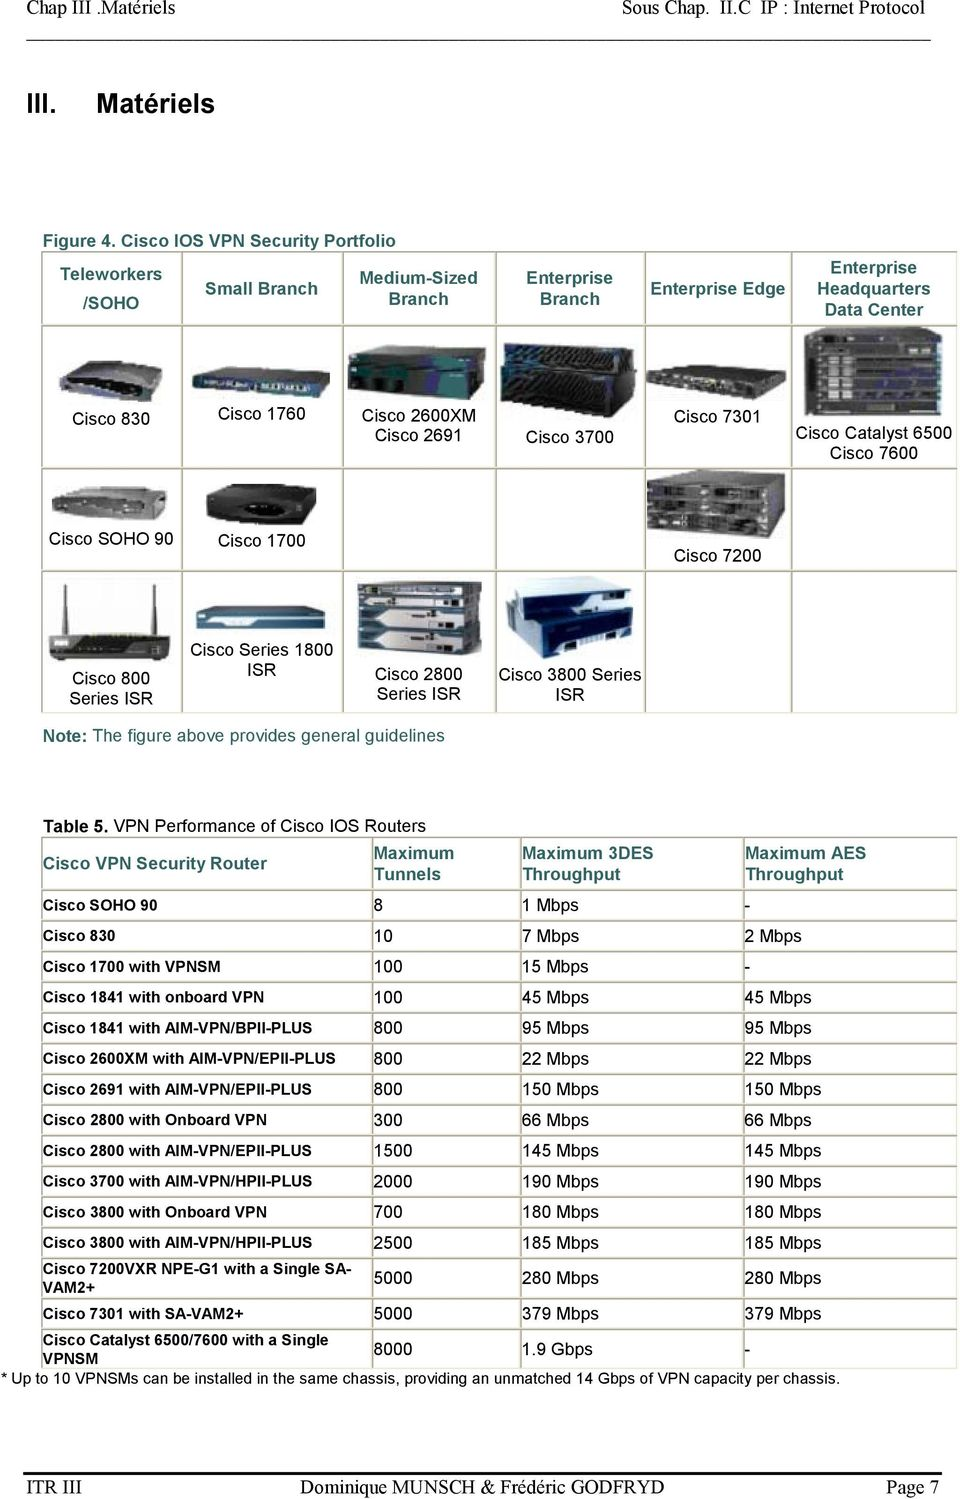 Cisco 3700 Cisco 7301 Cisco Catalyst 6500 Cisco 7600 Cisco SOHO 90 Cisco 1700 Cisco 7200 Cisco 800 Series ISR Cisco Series 1800 ISR Cisco 2800 Series ISR Cisco 3800 Series ISR Note: The figure above